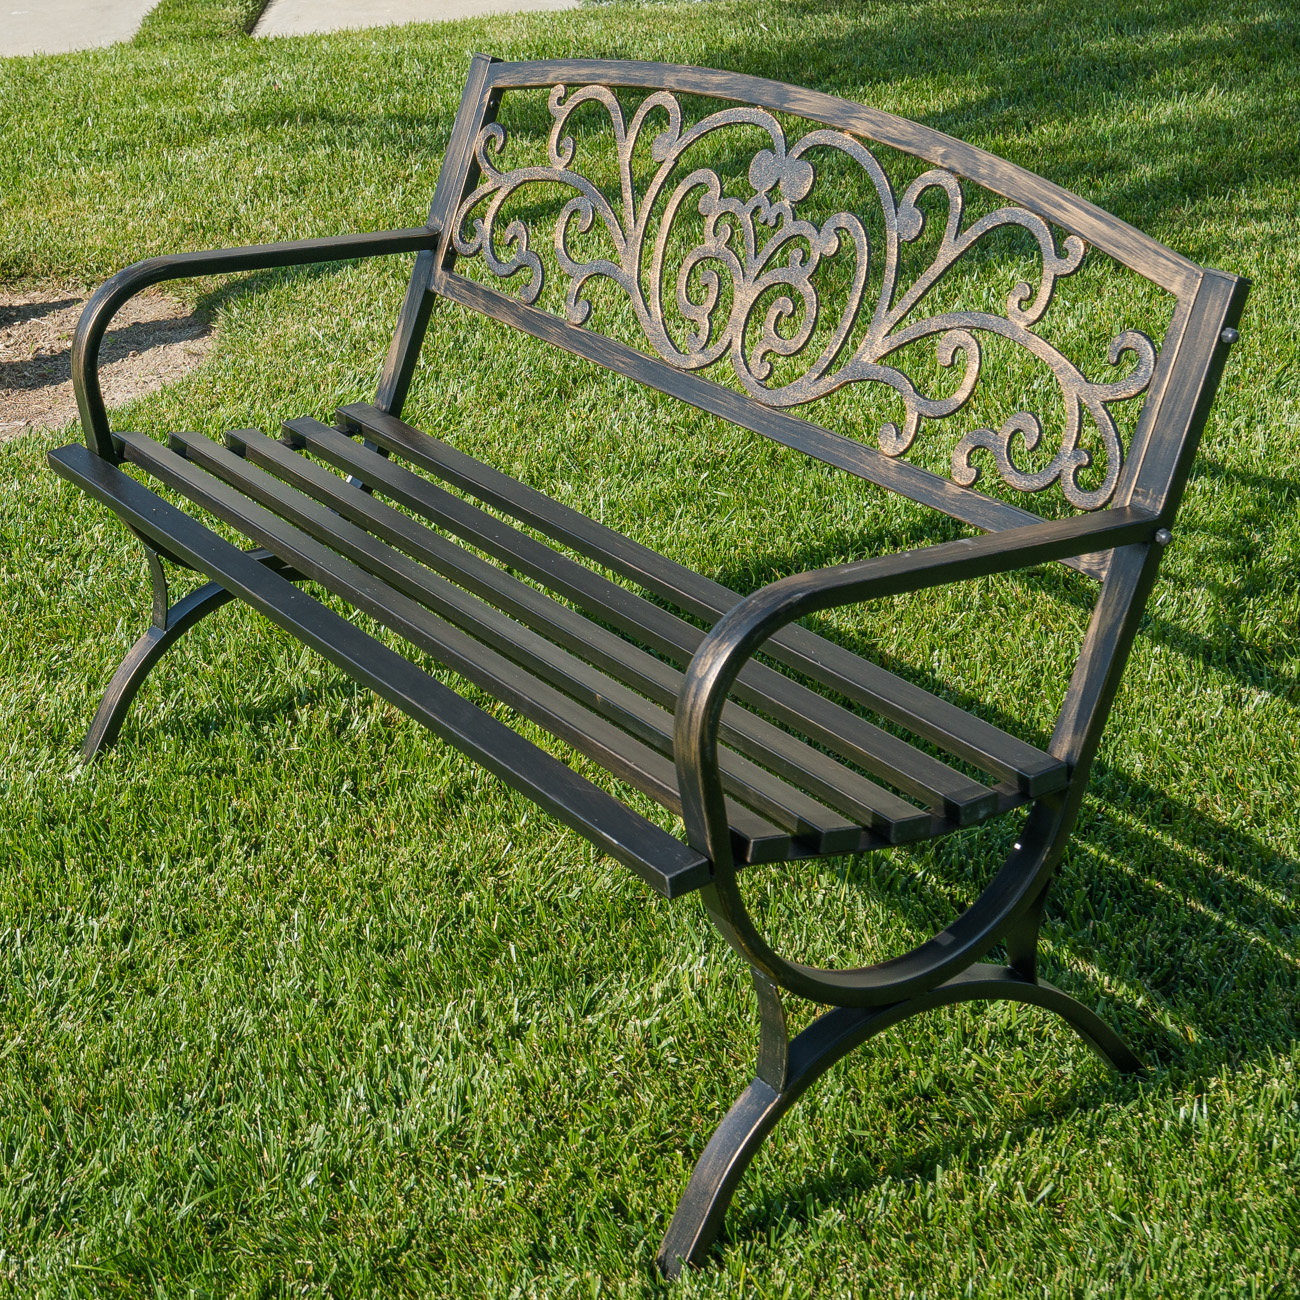 Miraculous Details About 50 Inch Outdoor Bench Patio Backyard Metal Garden Furniture Seat Bronze Black Bralicious Painted Fabric Chair Ideas Braliciousco